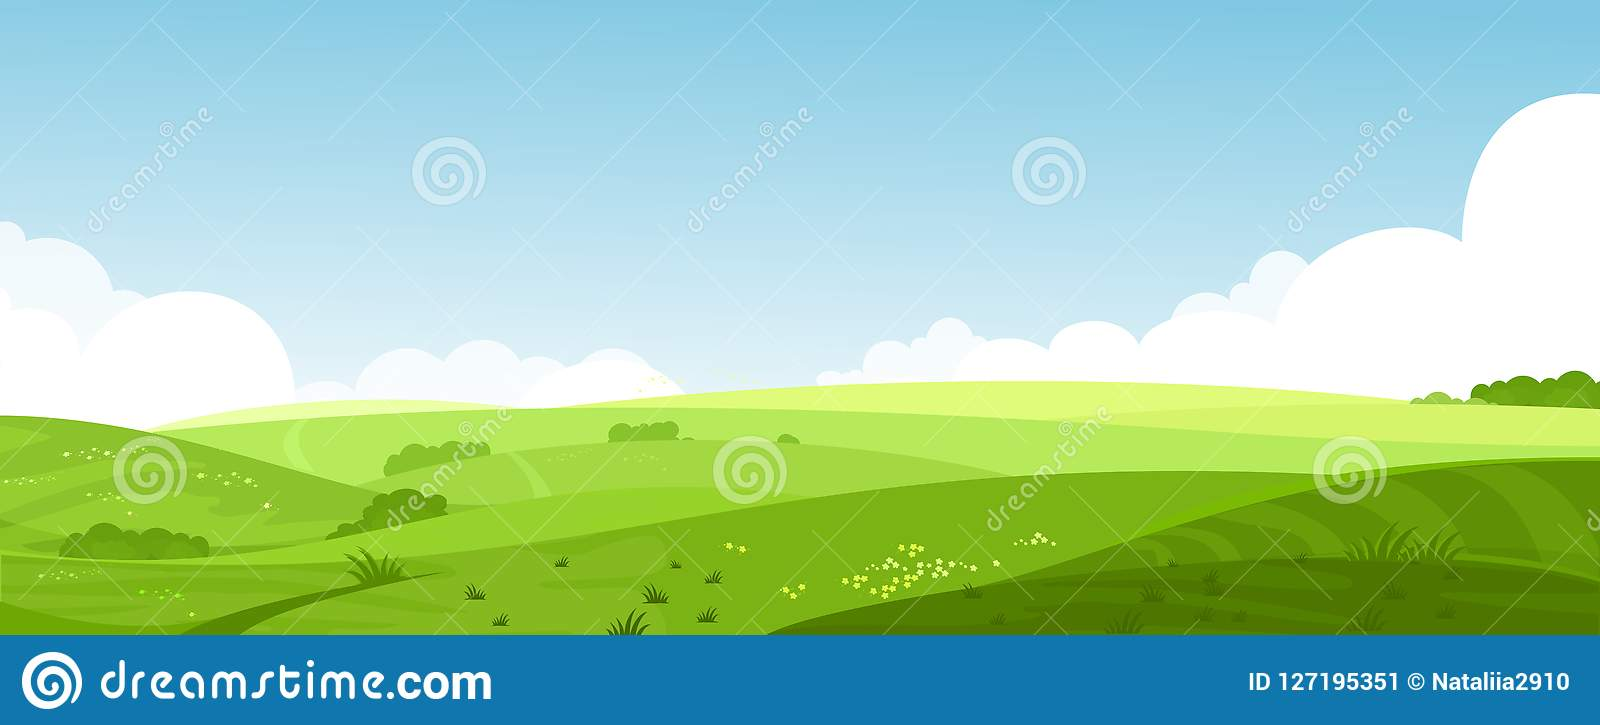 Vector illustration of beautiful summer fields landscape with a dawn, green hills, bright color blue sky, country